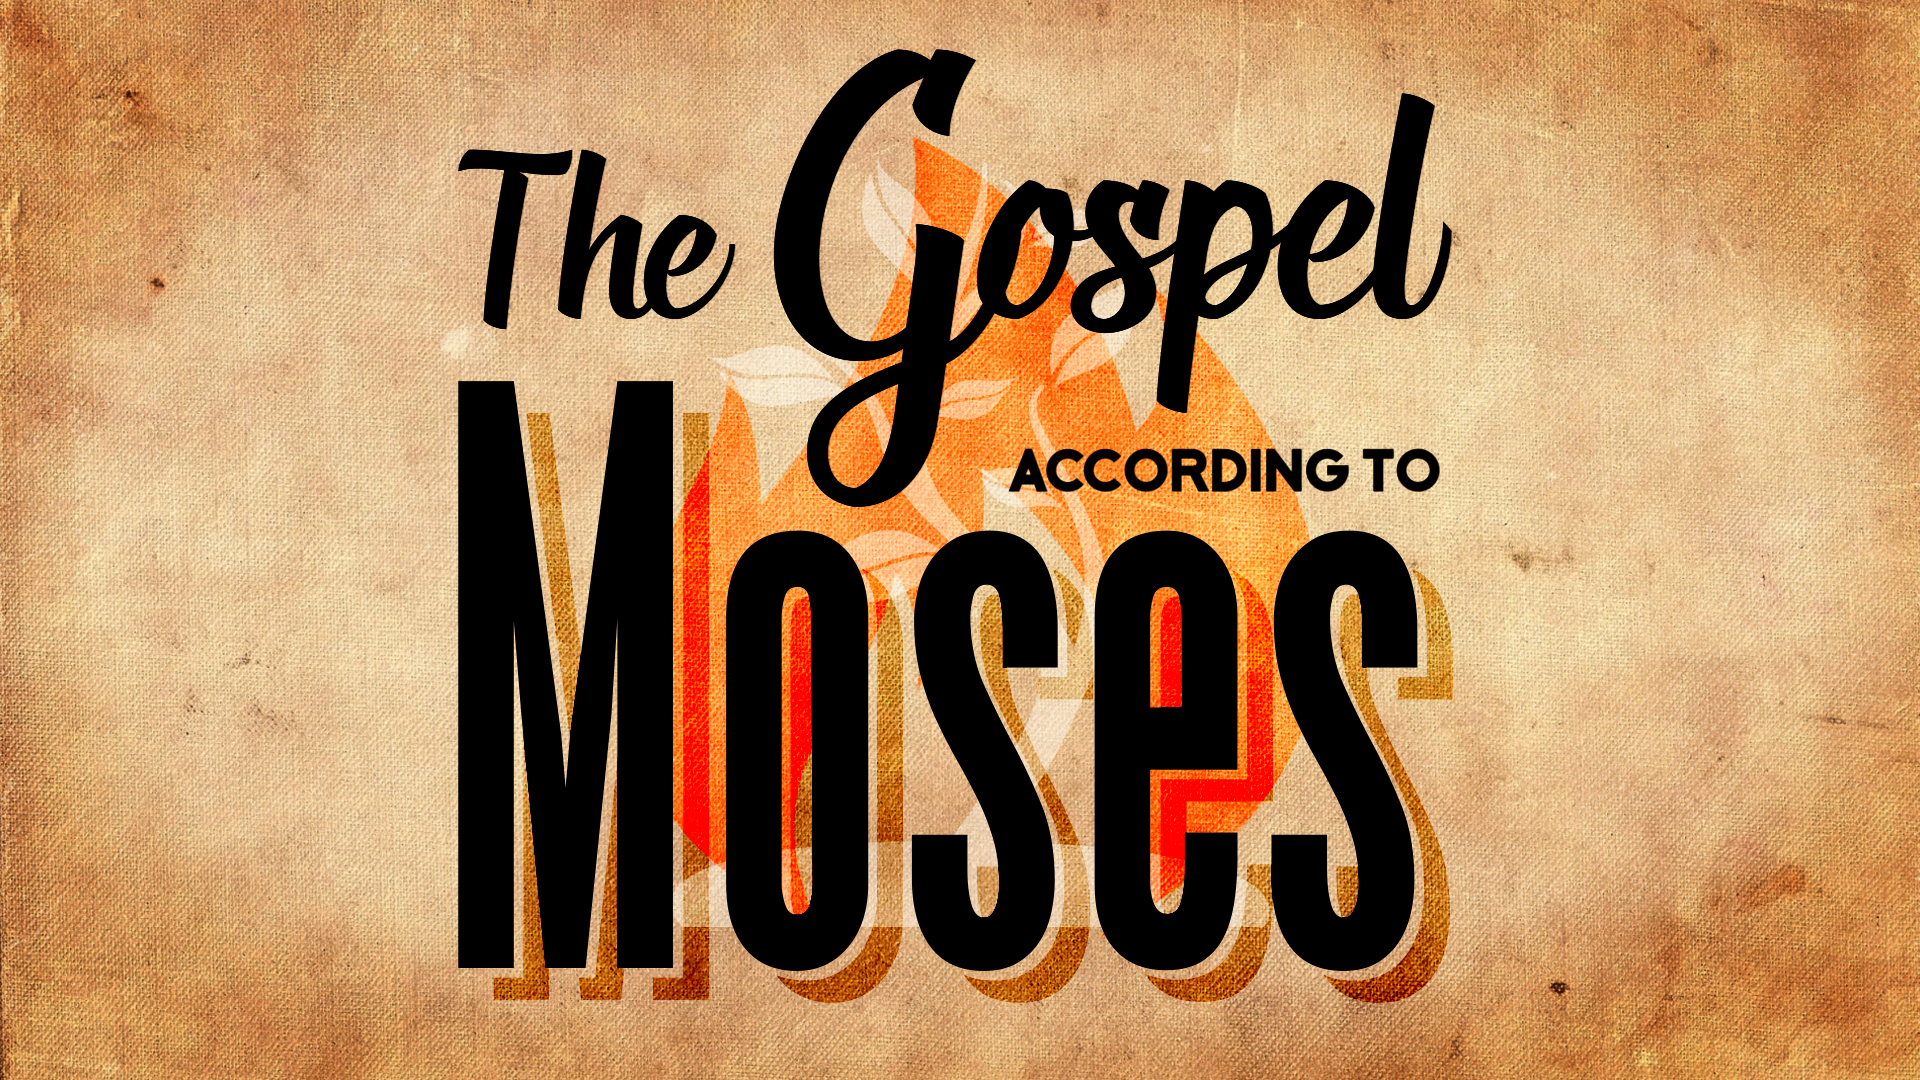 Summer 2015: God has been telling a story since the beginning. Part of His story includes an amazing individual names Moses…but the story is really all about Jesus. Moses is meant to point to the Great Savior!